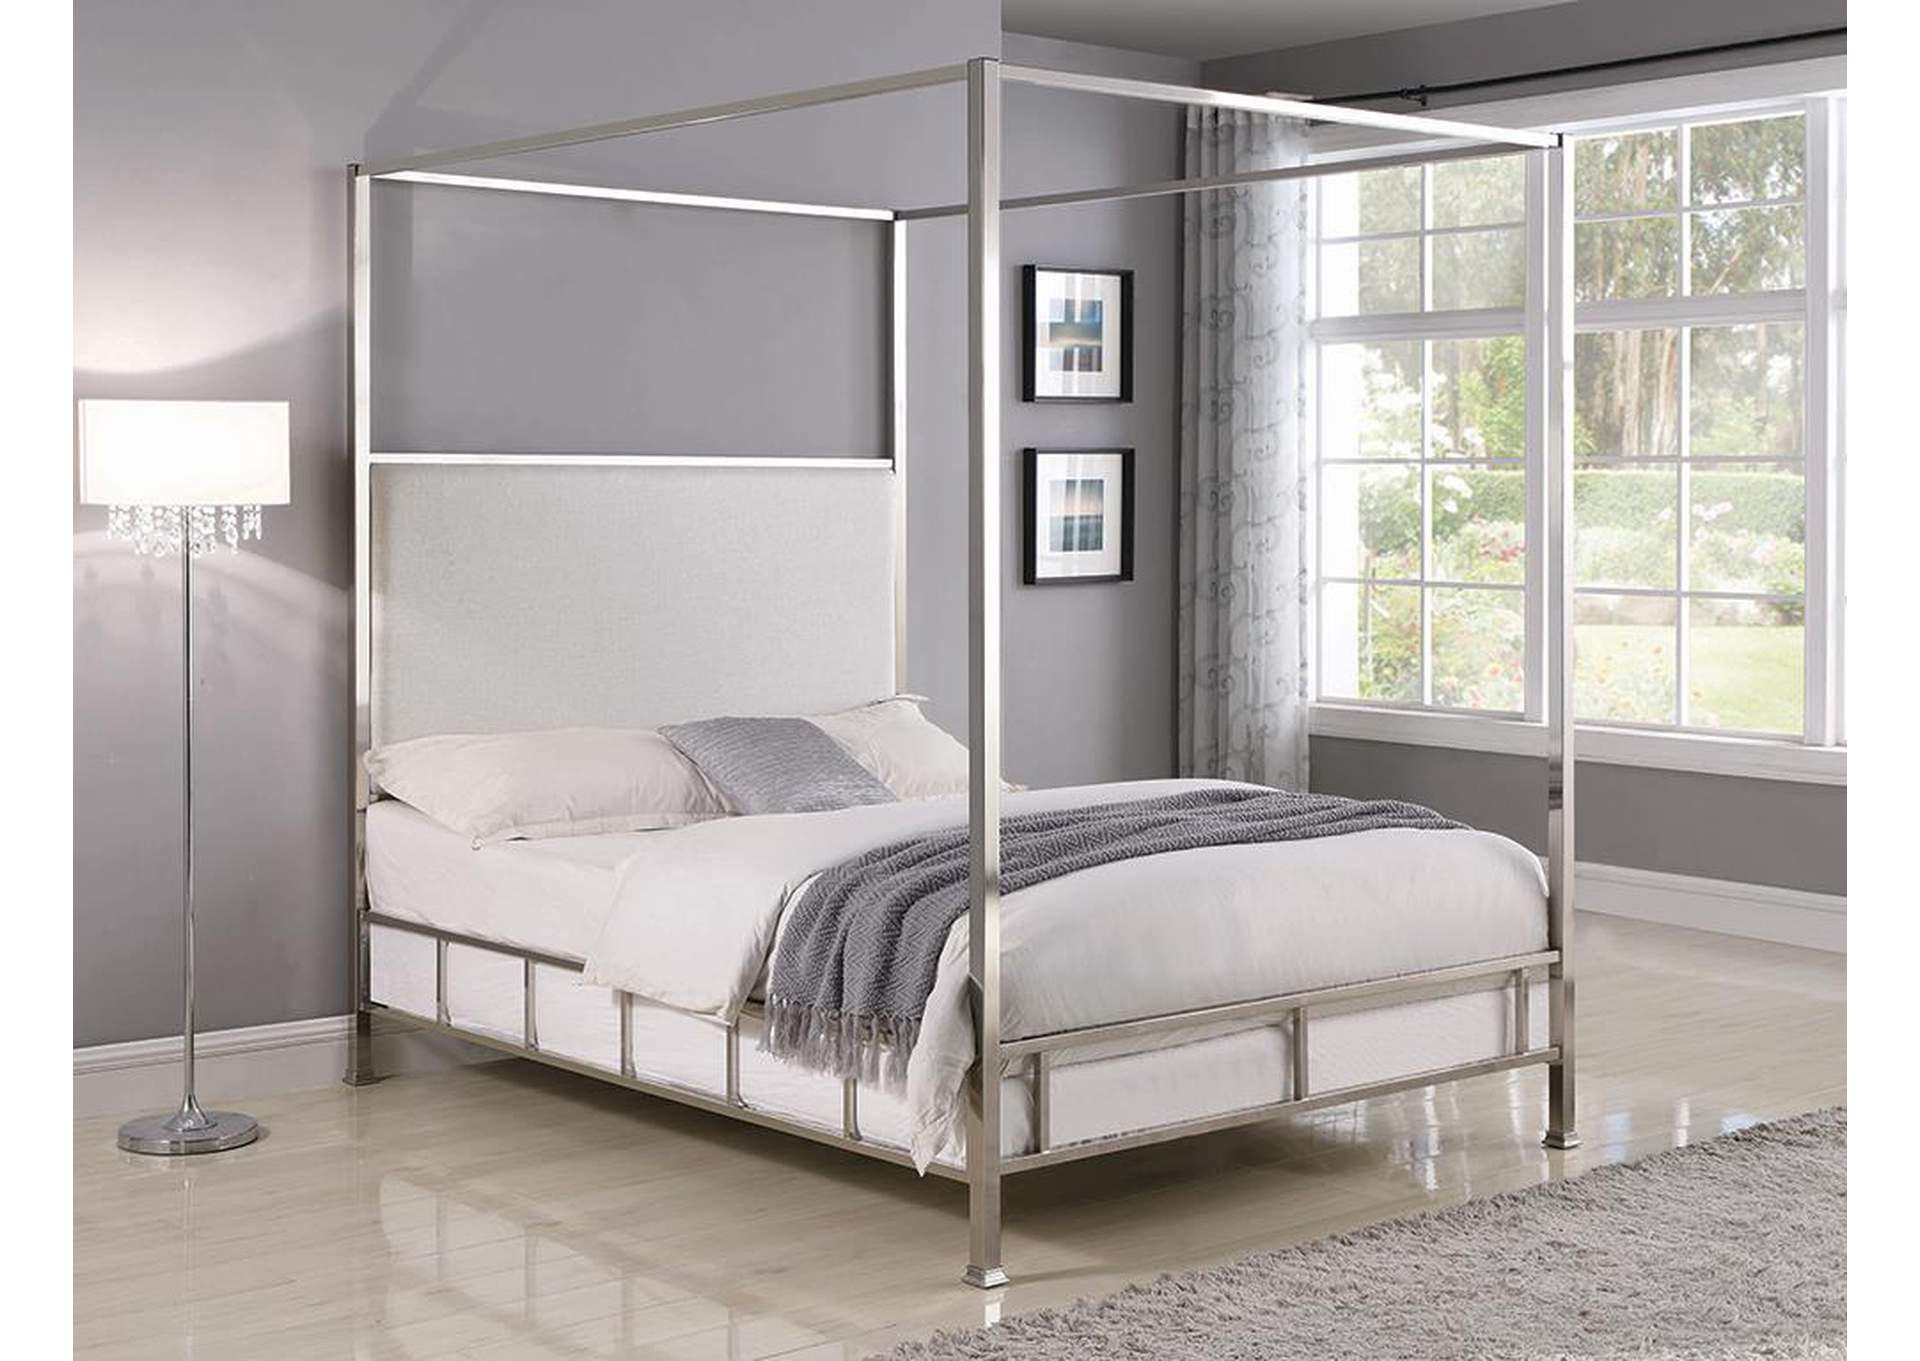 Chrome/Ivory Canopy Queen Bed,Coaster Furniture